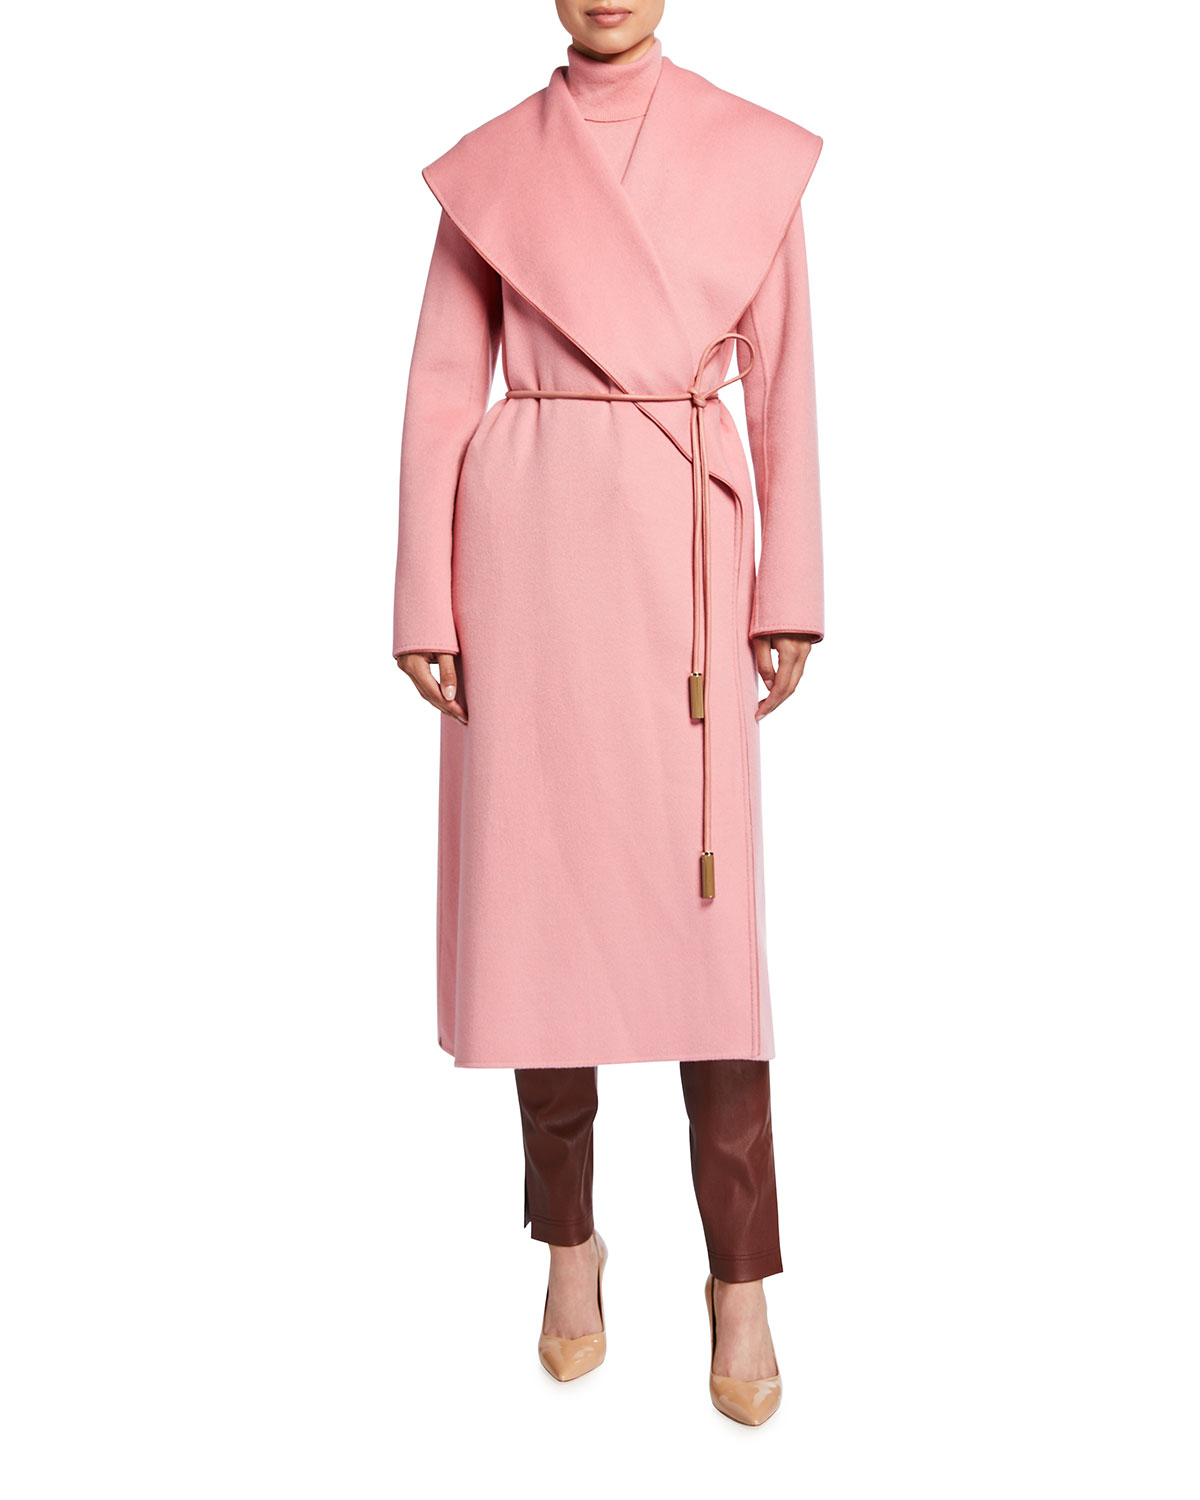 Lafayette 148 New York Ashford Luxe Cashmere Coat